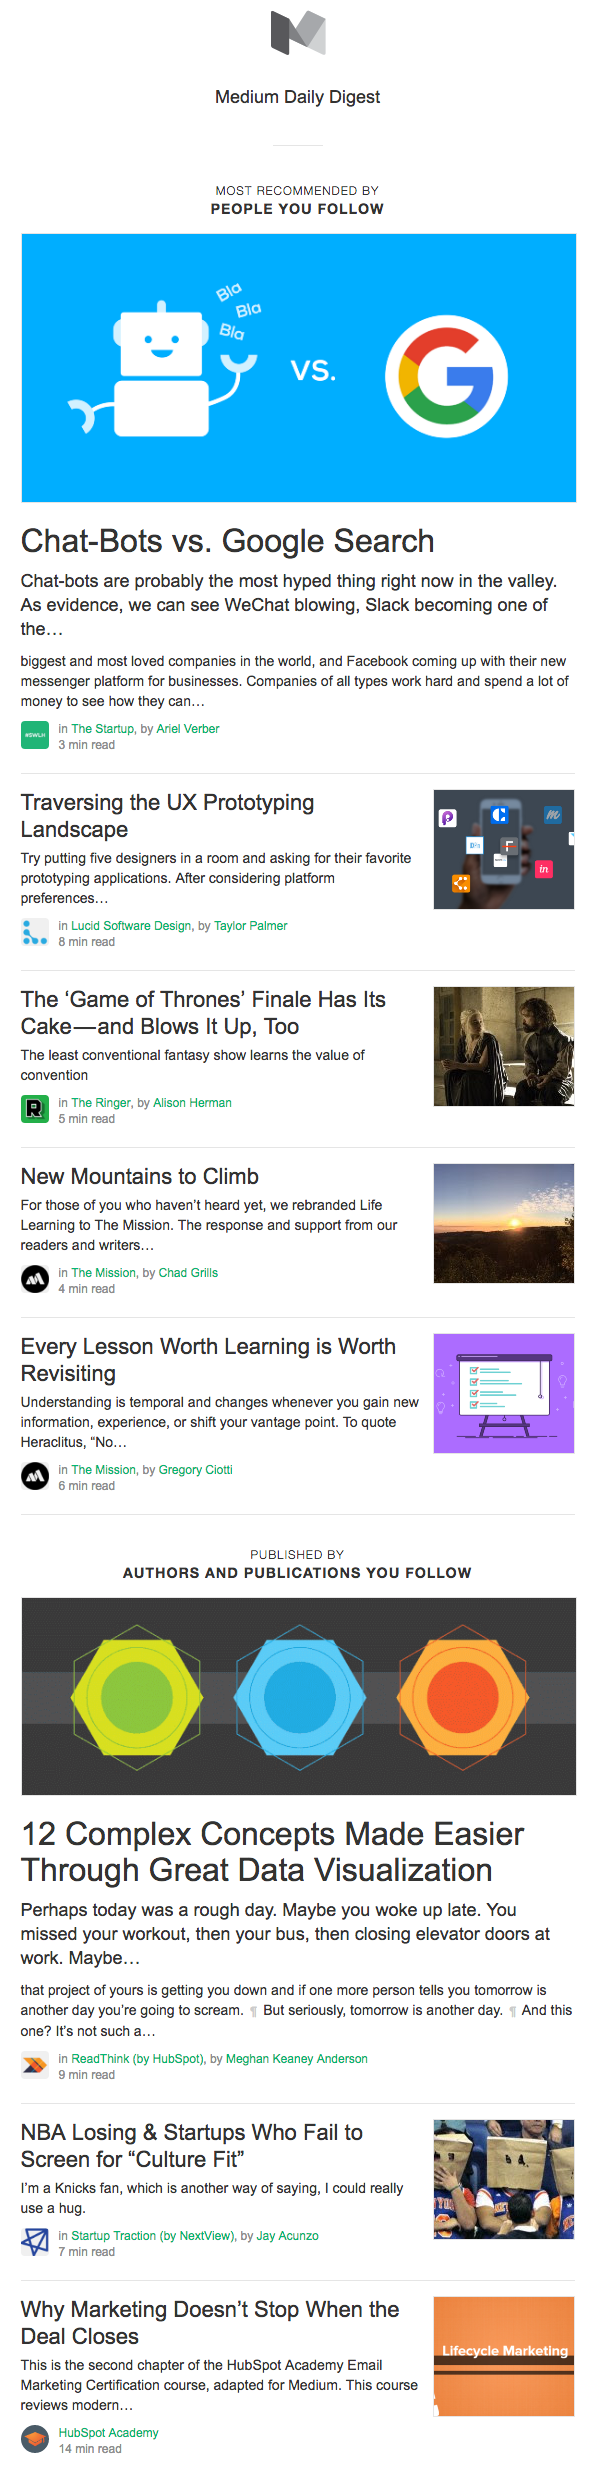 Email newsletter example design with blog posts by Medium